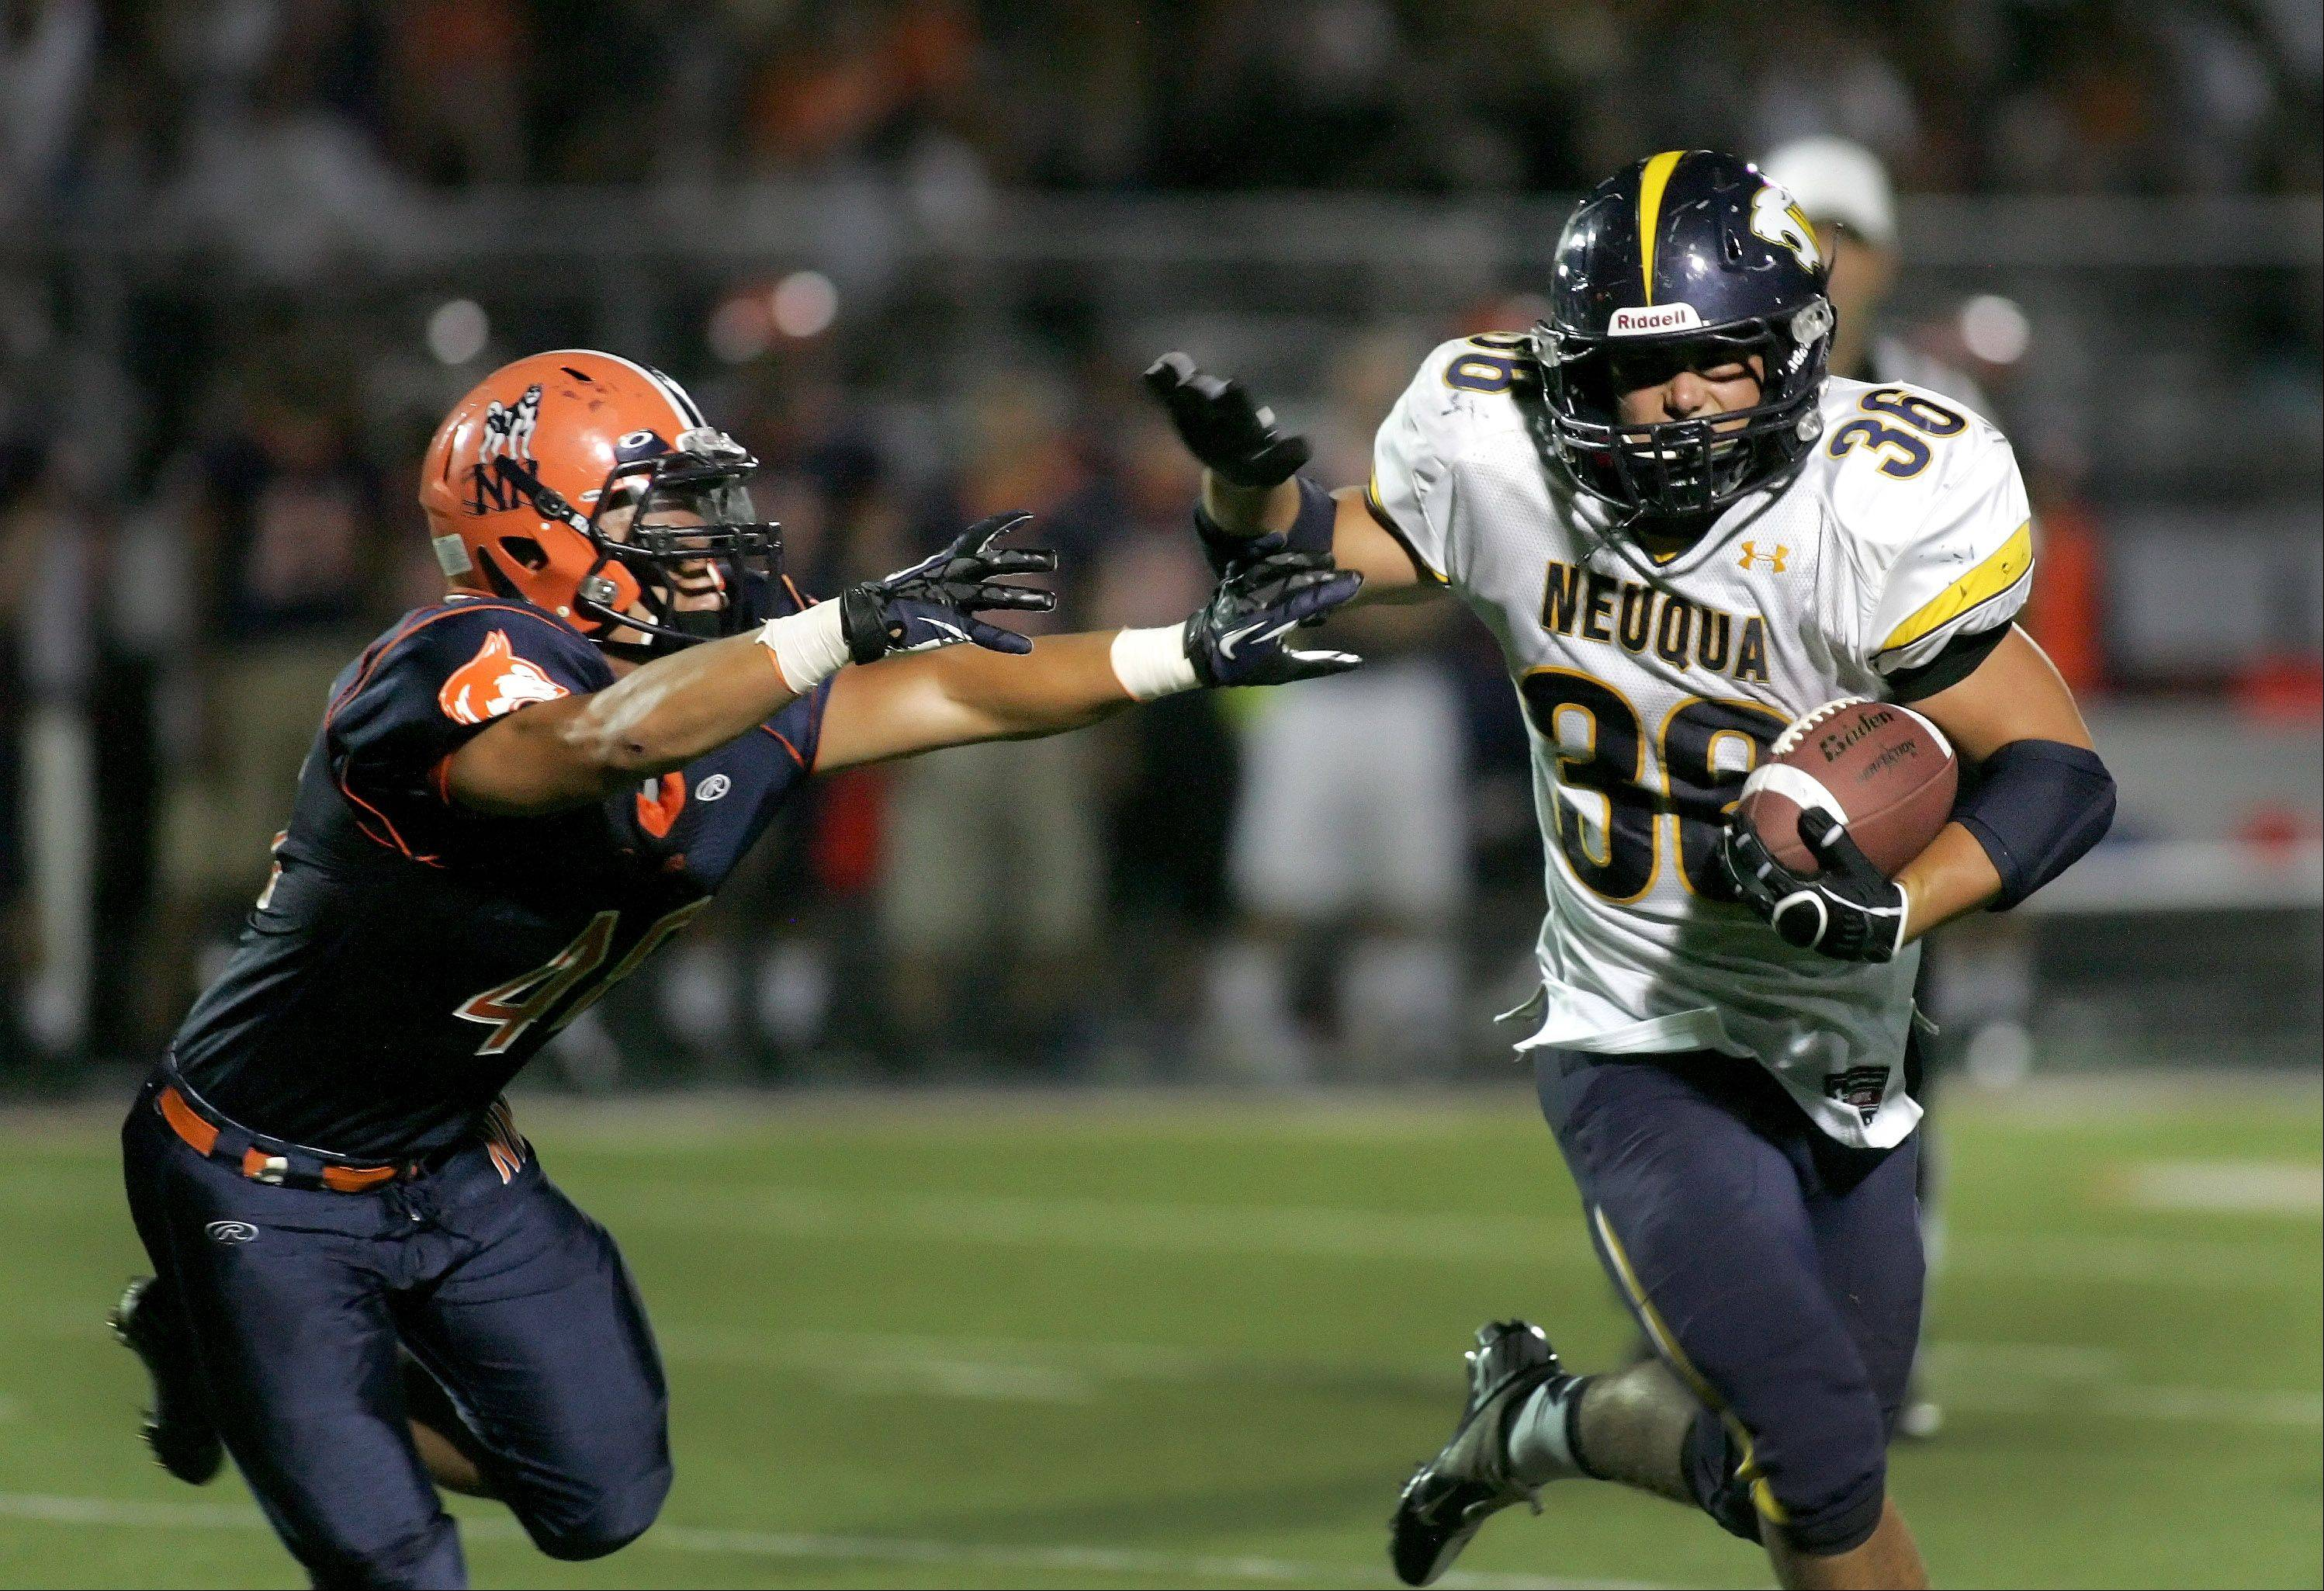 Neuqua Valley's Joey Rhattigan, right, holds off Naperville North's Eric Montgomery in football action Friday in Naperville.